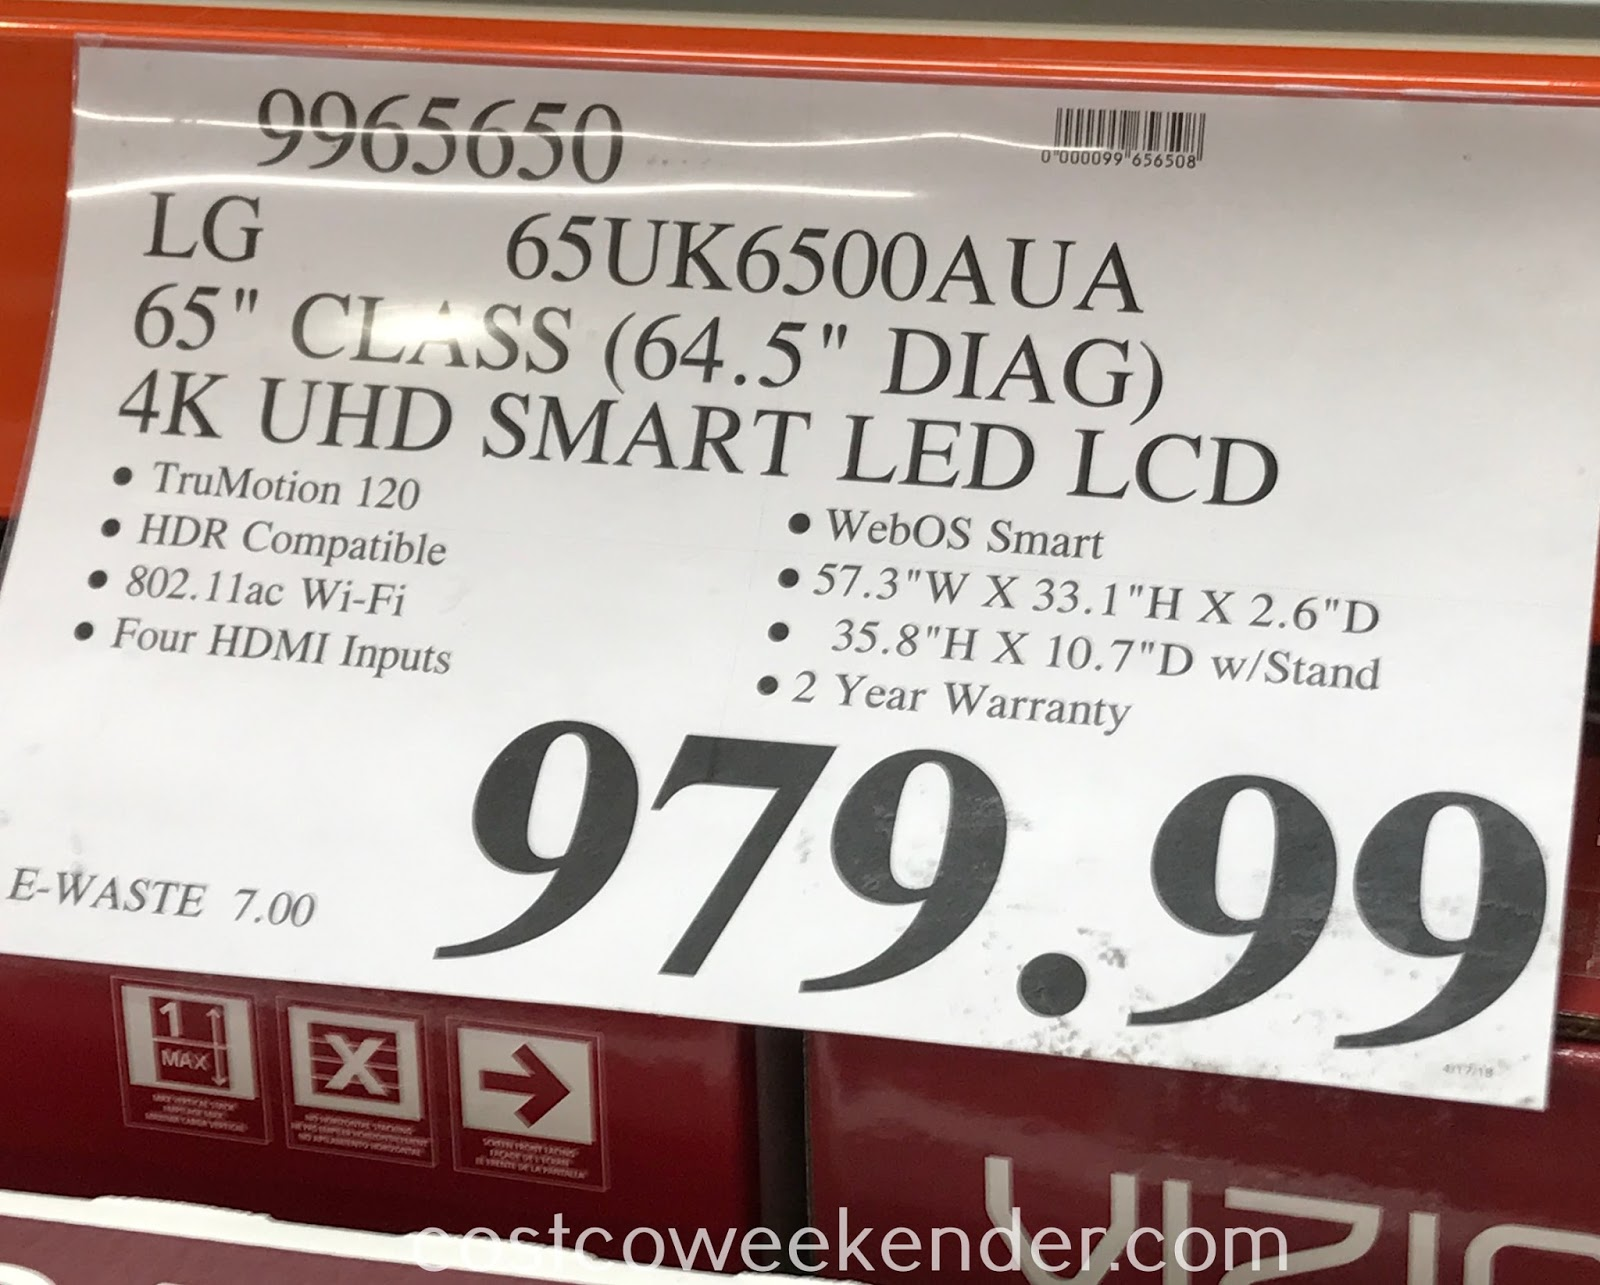 Deal for the LG 65UK6500AUA 65in tv at Costco